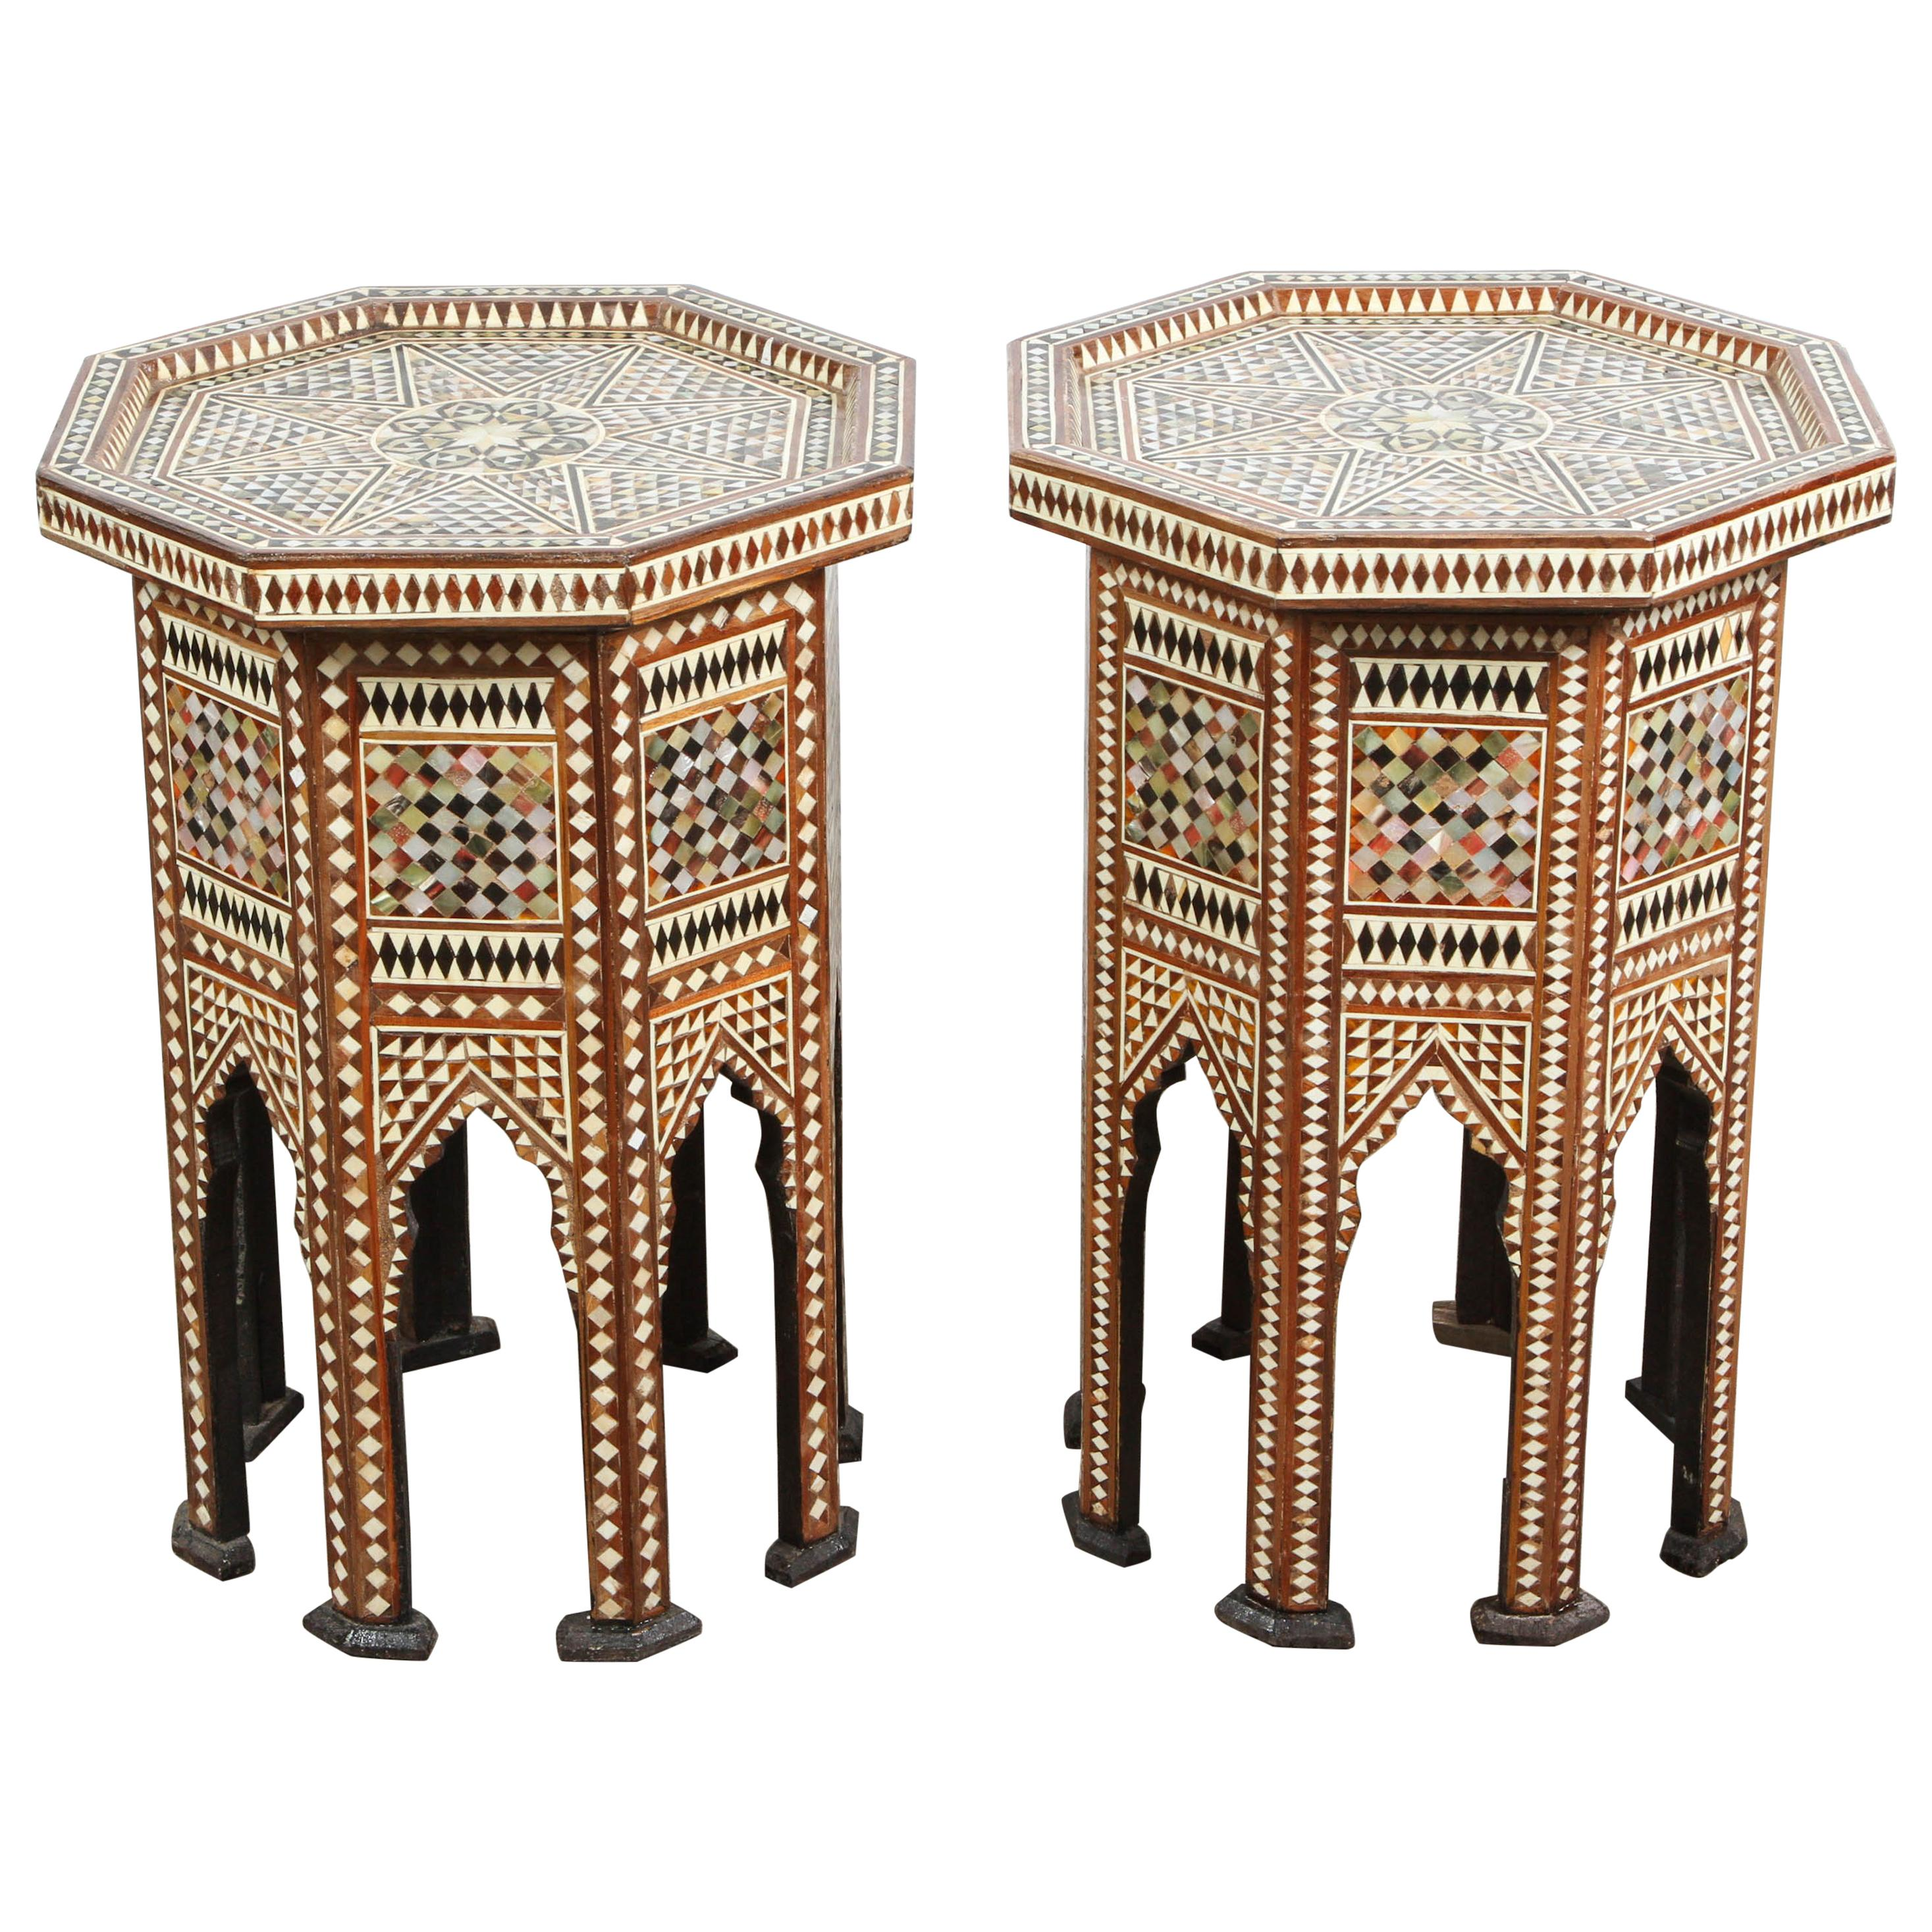 Moorish Octagonal Tables Inlay with Mother of Pearl